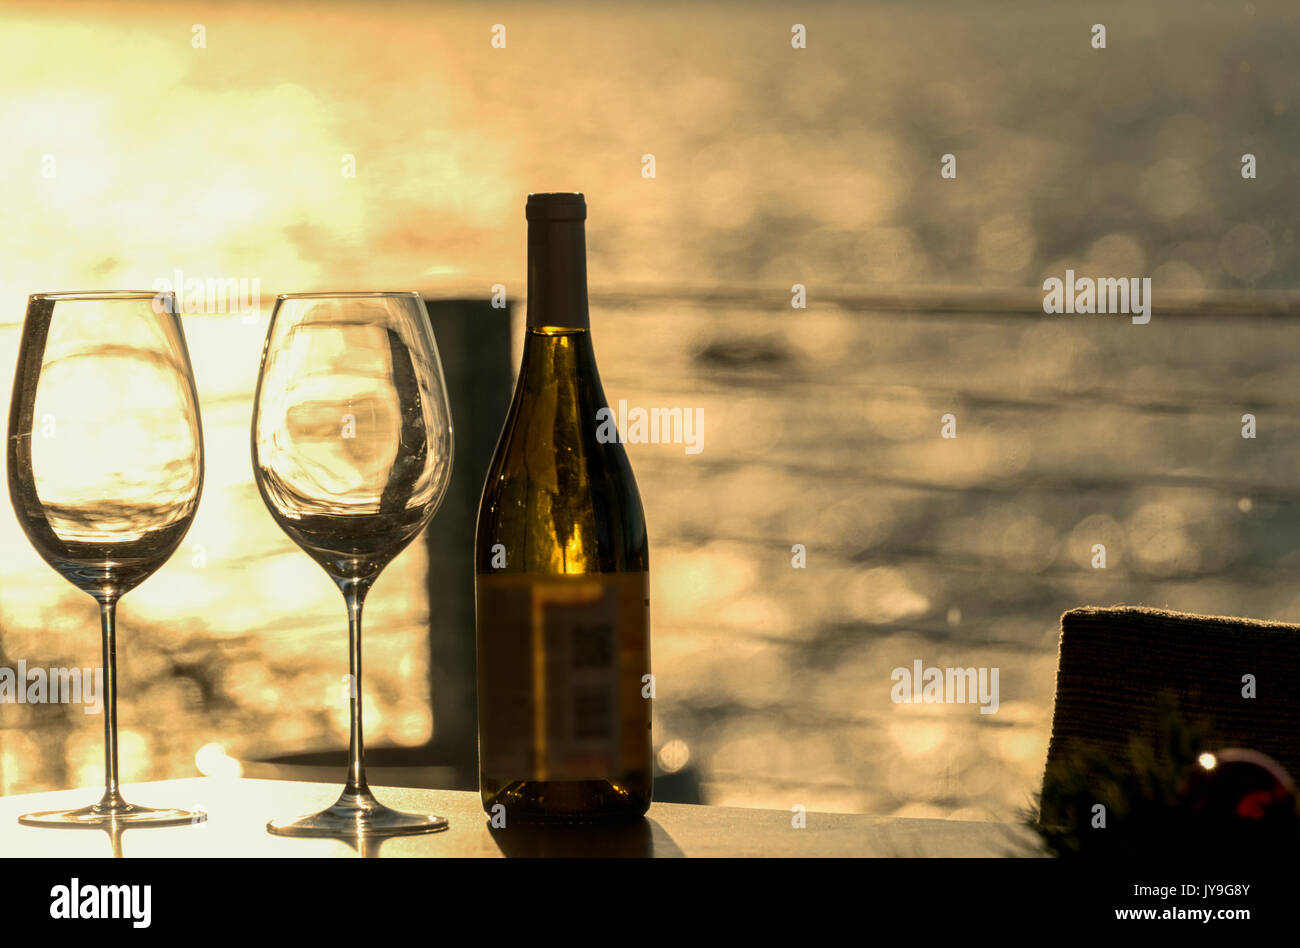 Two empty wine glasses with a bottle on a beach home table with late day sun lighting the water in background. - Stock Image